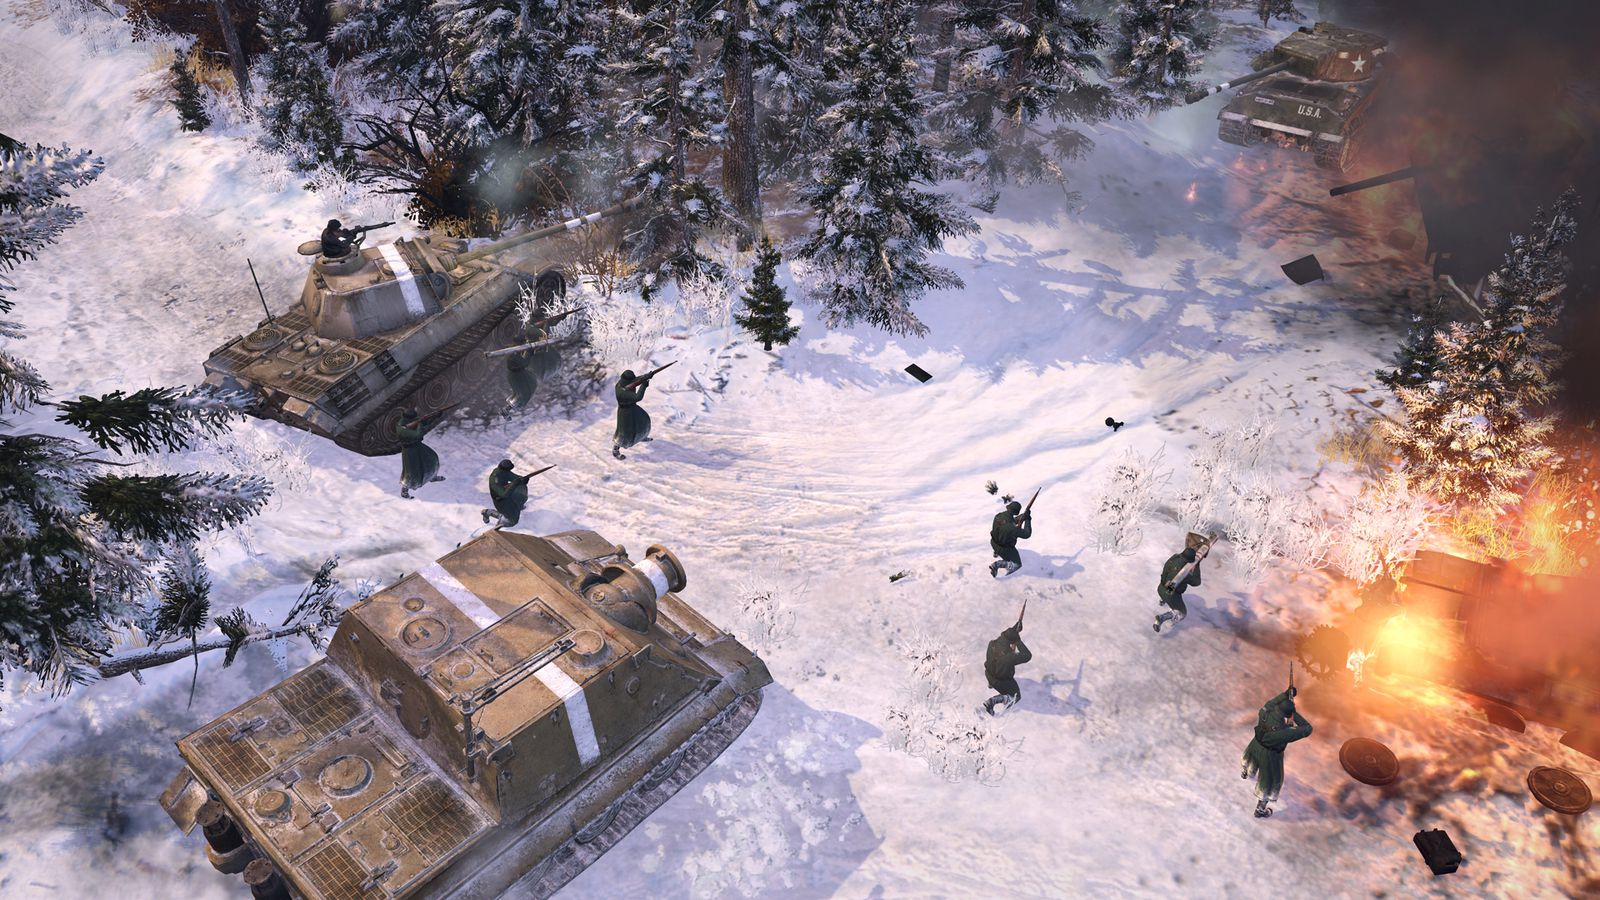 Moving Company Reviews >> Company of Heroes 2: The Western Front Armies returns to ...